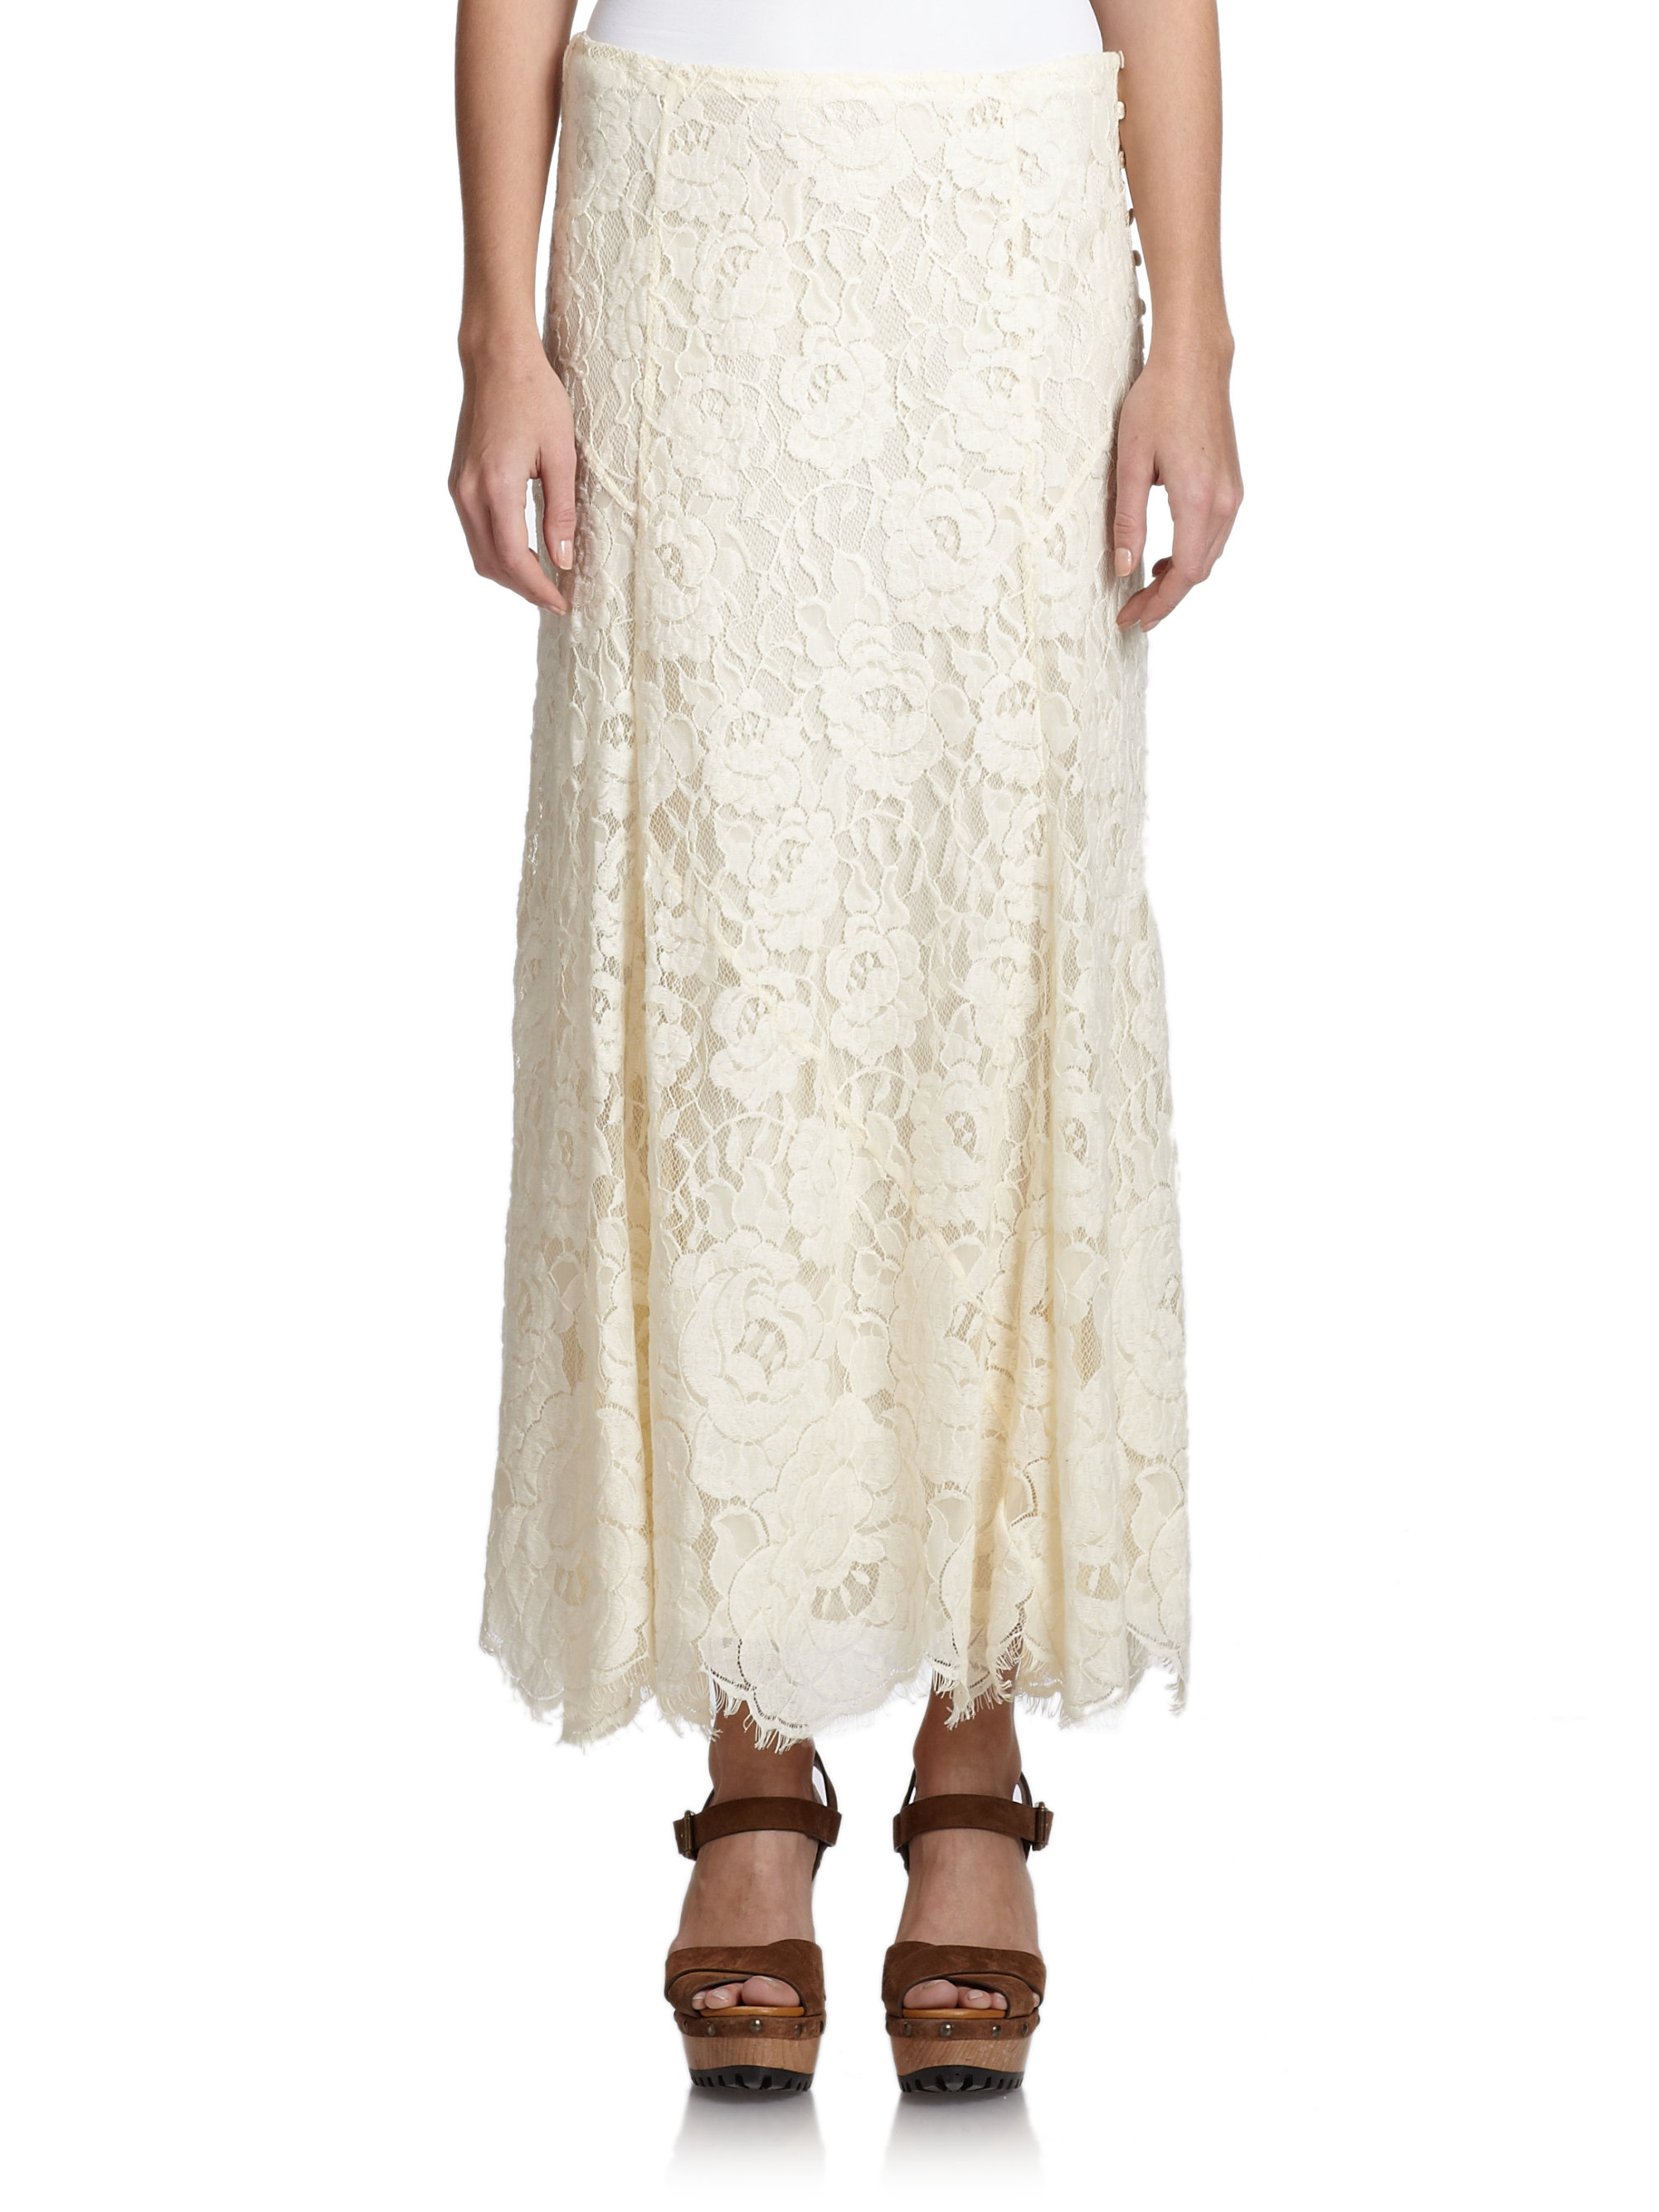 993c1d7793 Polo Ralph Lauren Lace Maxi Skirt in Natural - Lyst